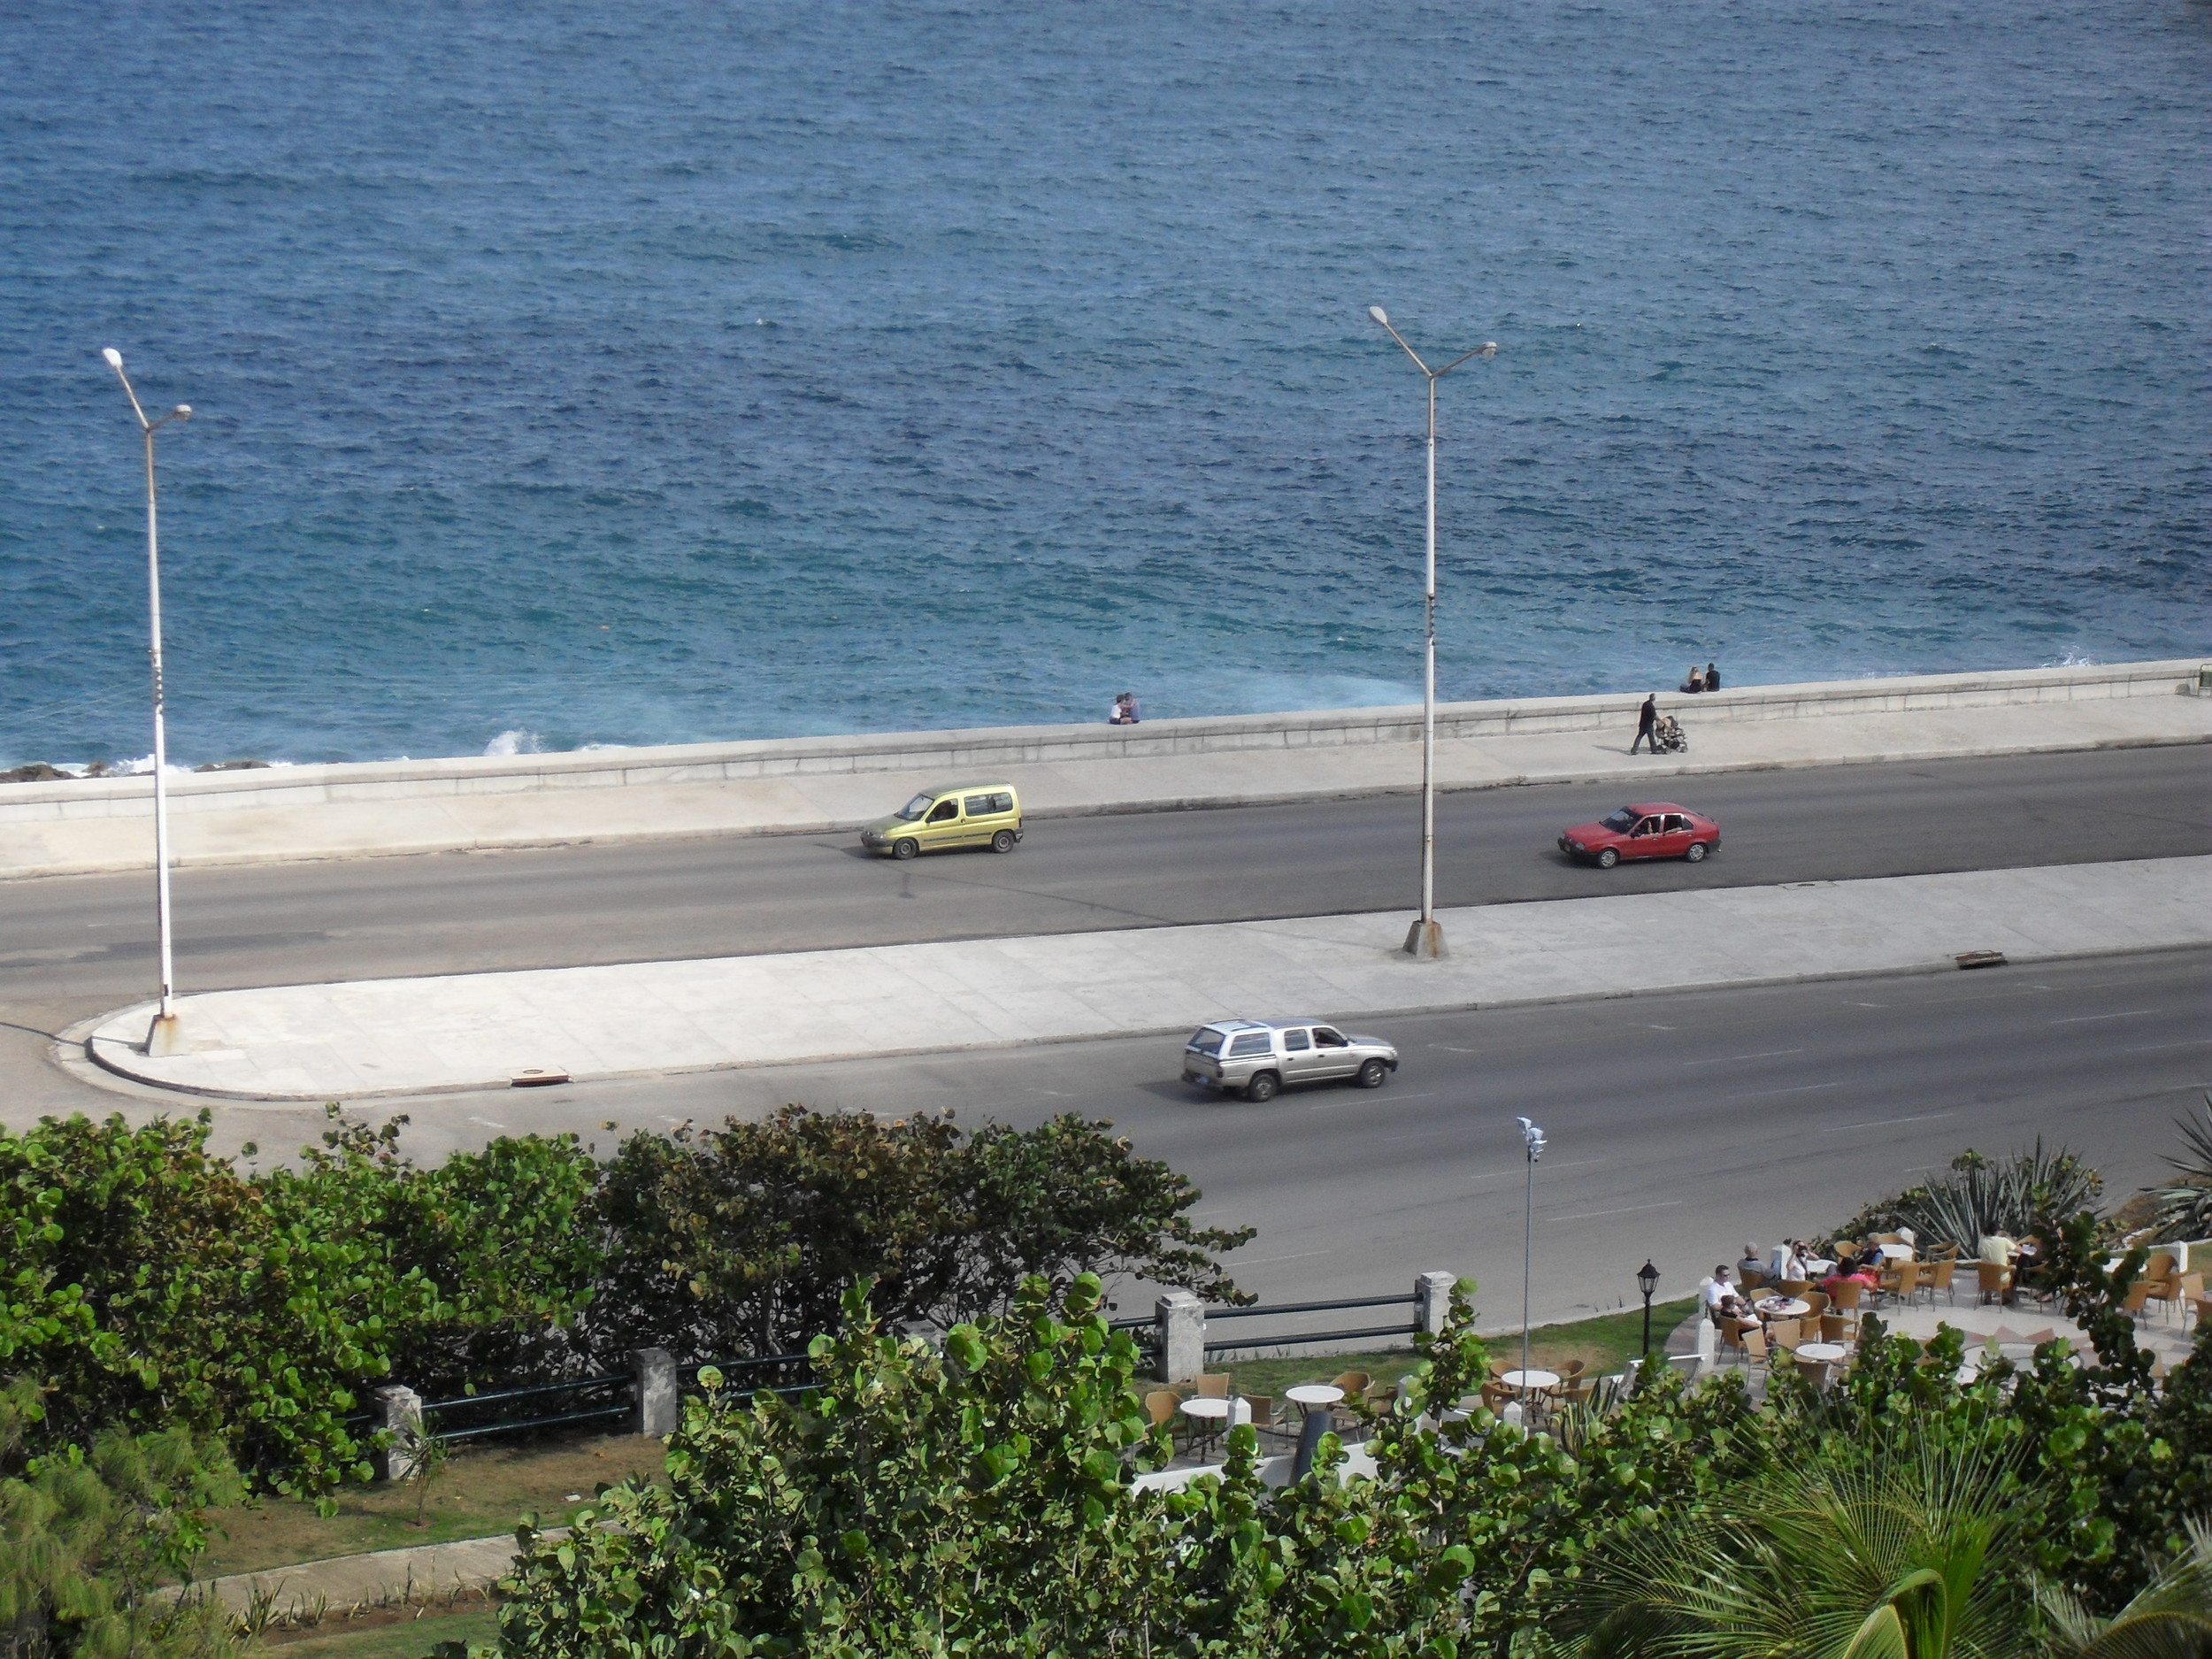 By day the Malecon is less crowded, as is the Nacional's garden bar (Foreground). Photo Credit Matt Lifflander